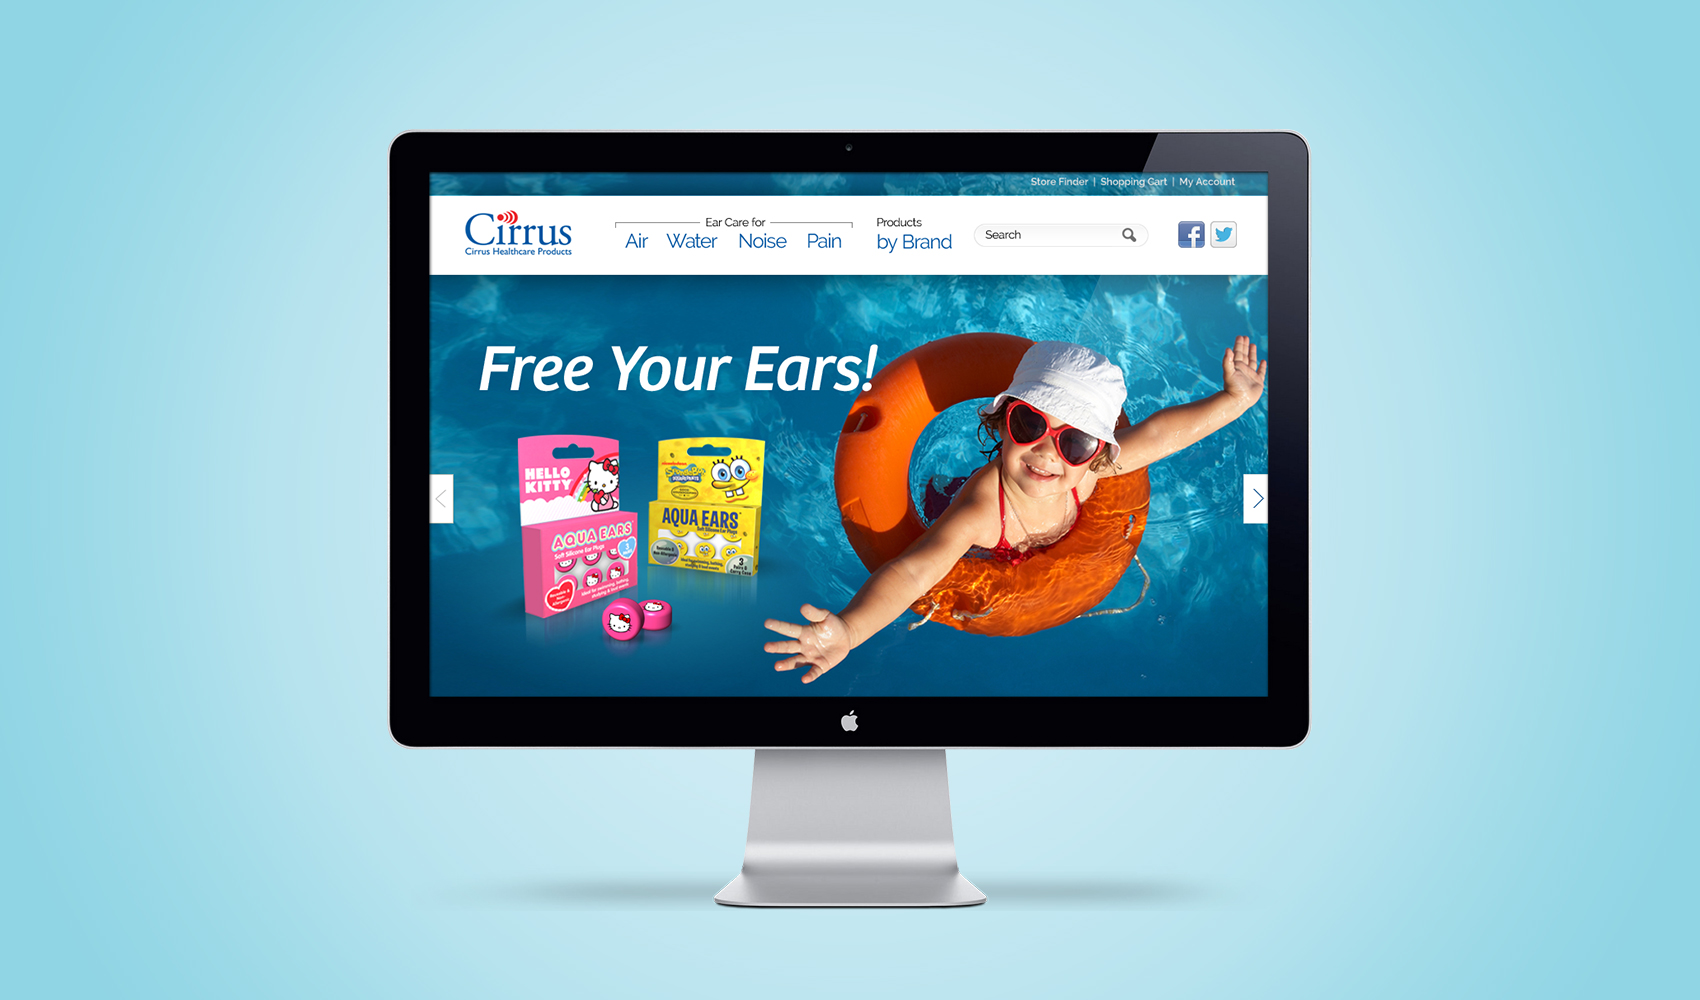 Vanguard - Brand Strategy & Website Redesign for Cirrus / Free Your Ears